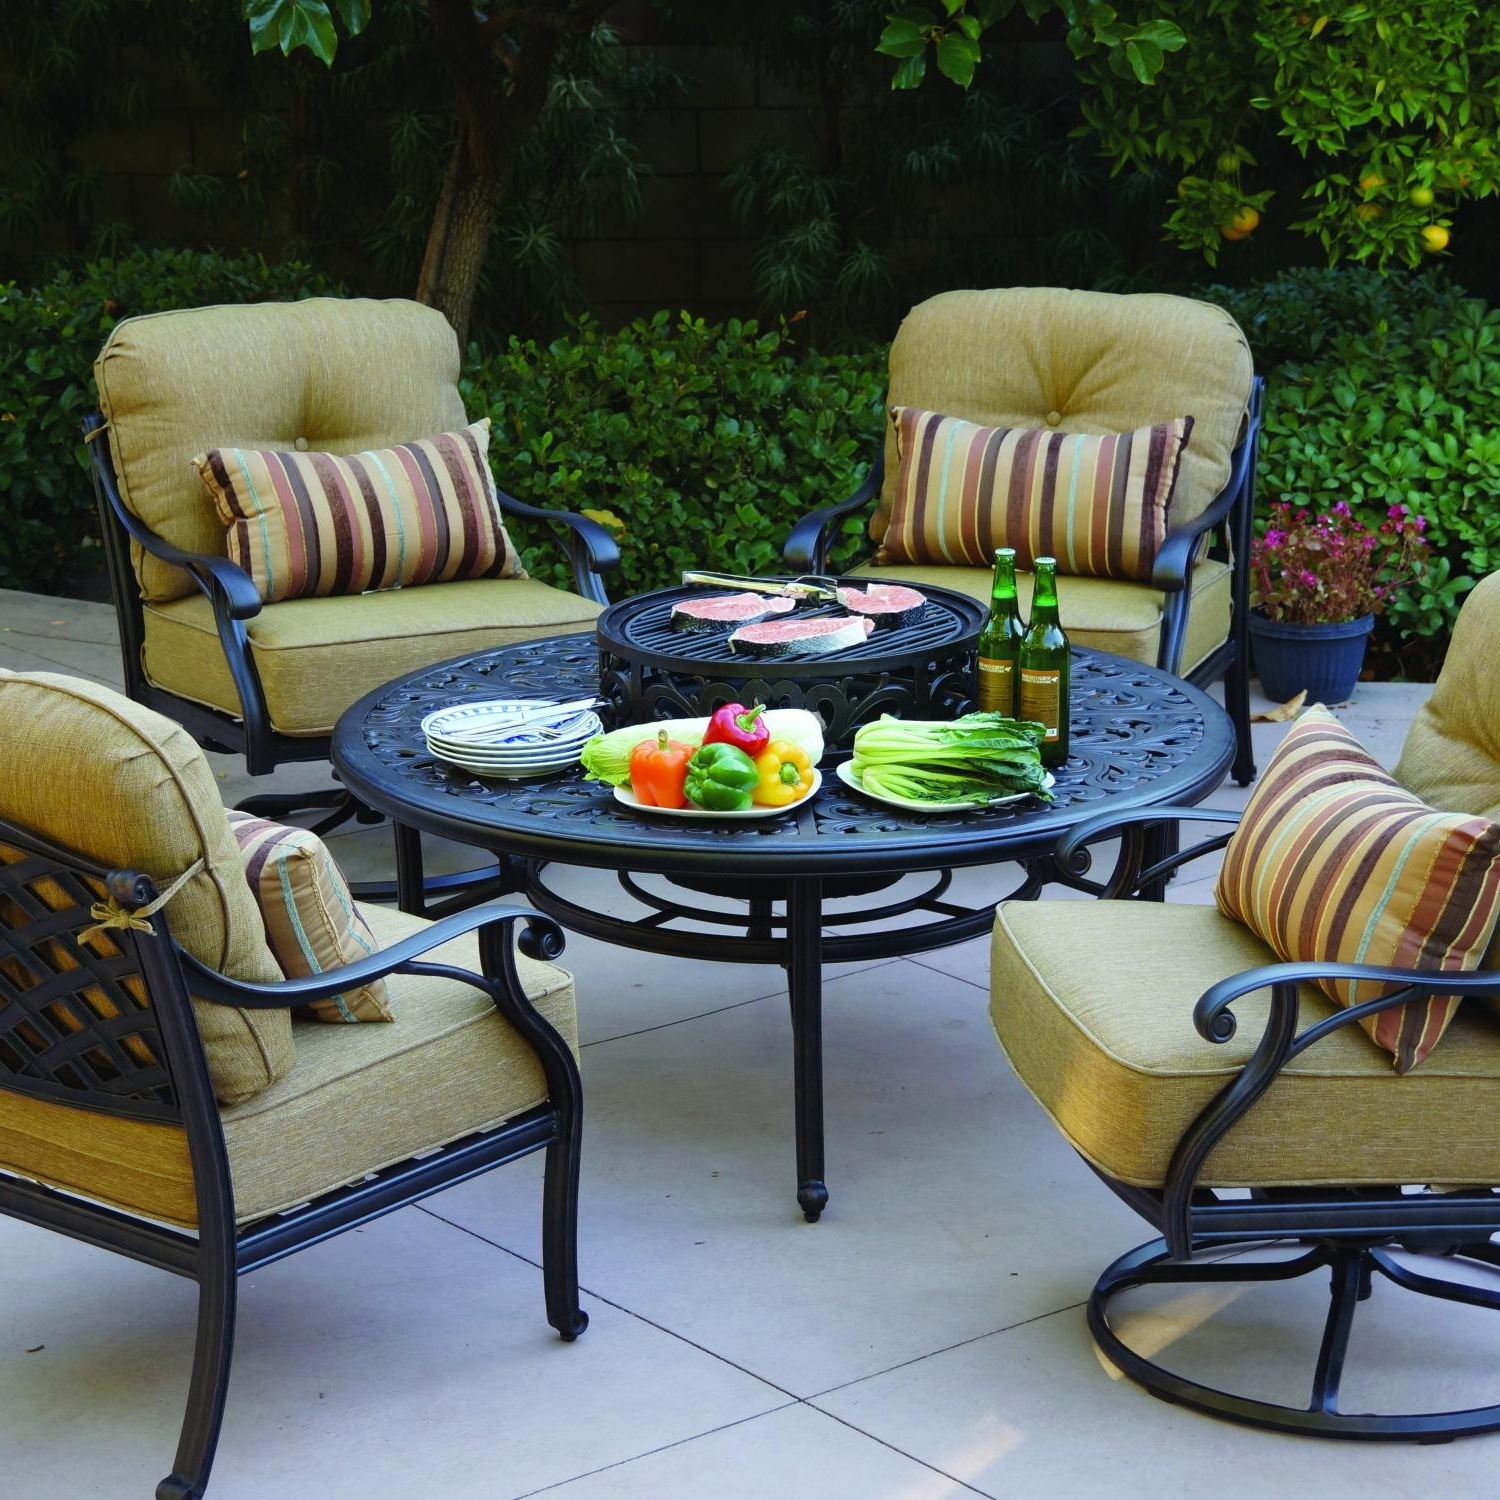 Famous Darlee Nassau 5 Piece Cast Aluminum Patio Fire Pit Conversation Seating Set  With 2 Swivel Rockers Pertaining To Patio Conversation Sets With Rockers (View 2 of 15)